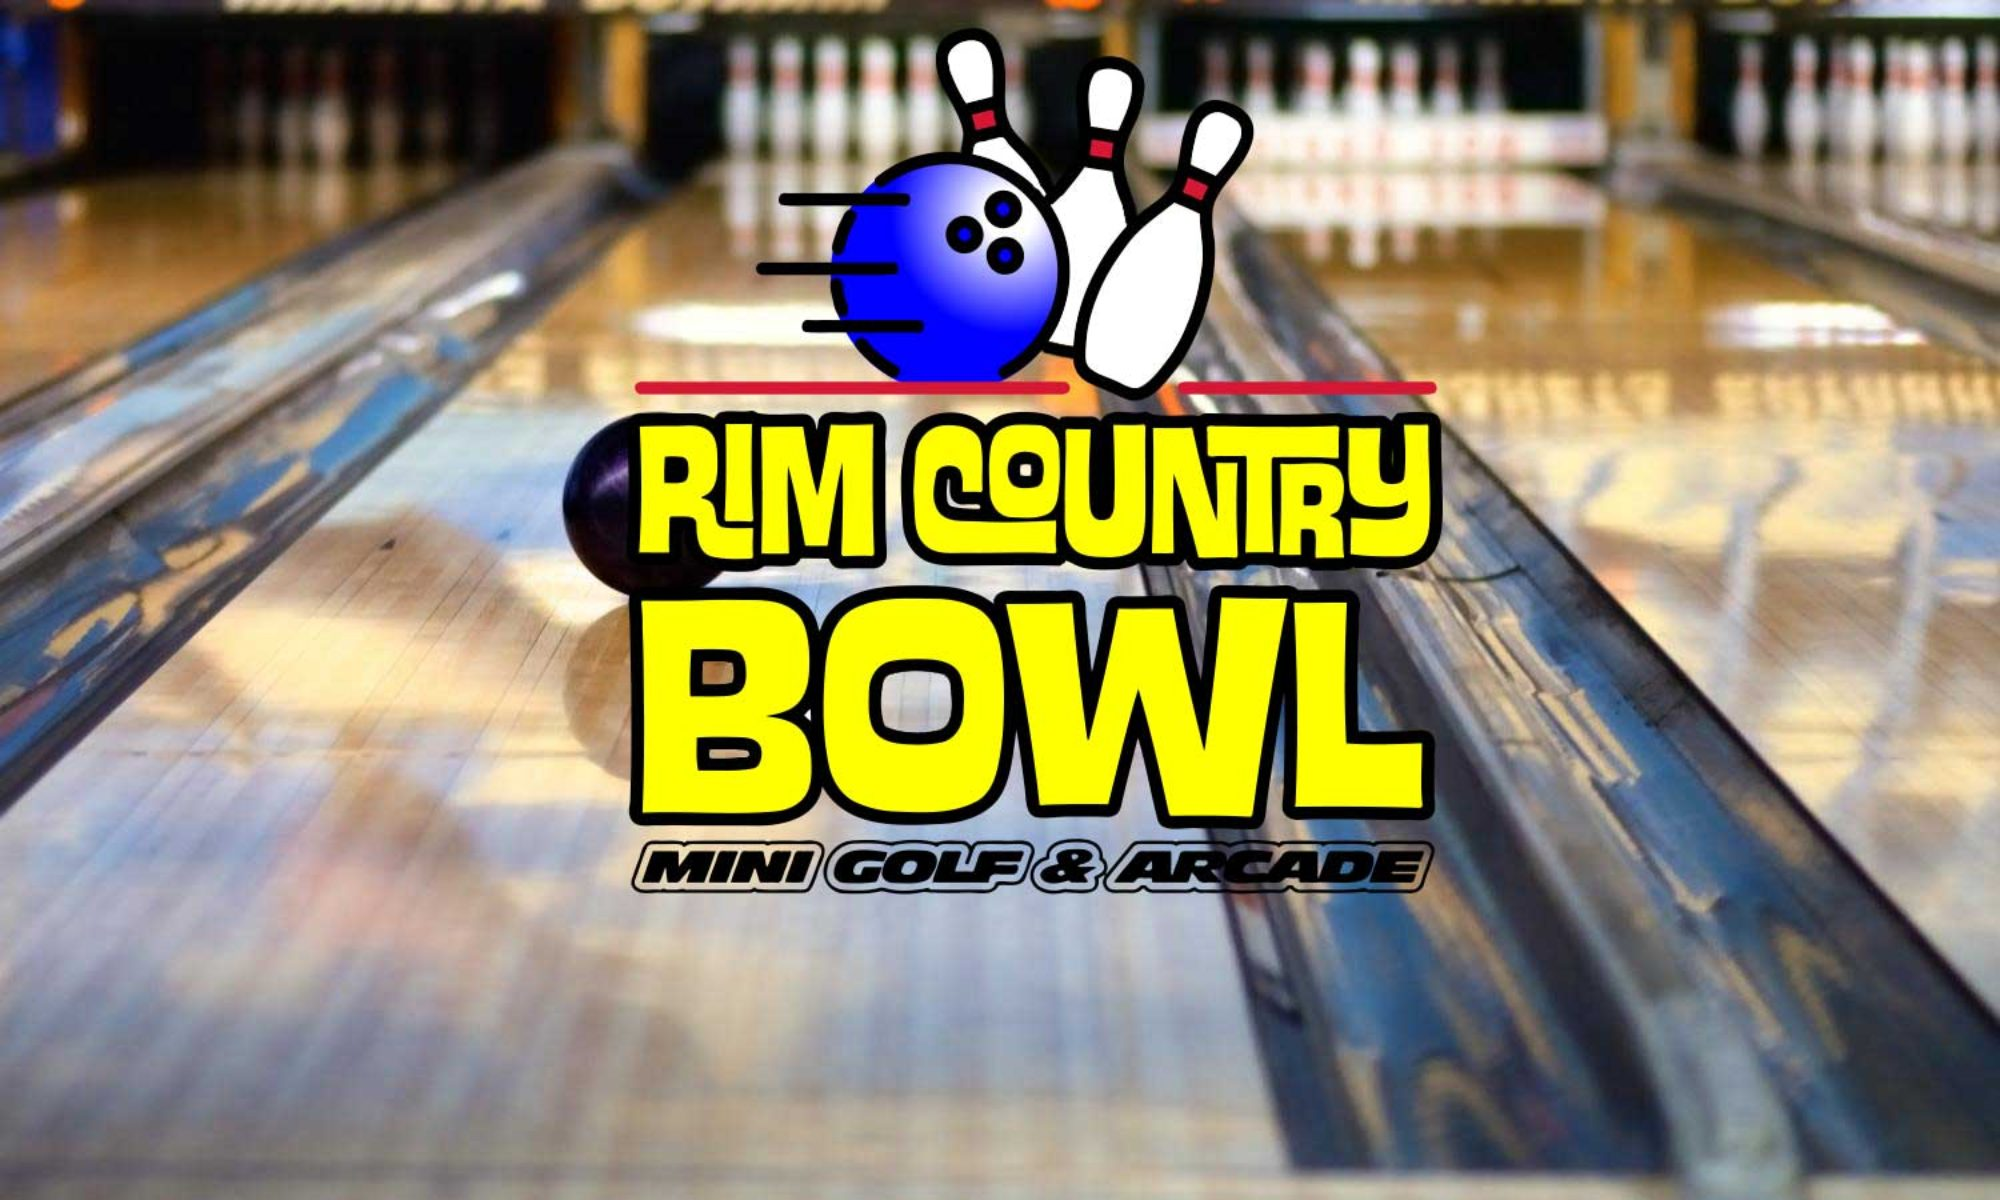 Rim Country Bowl